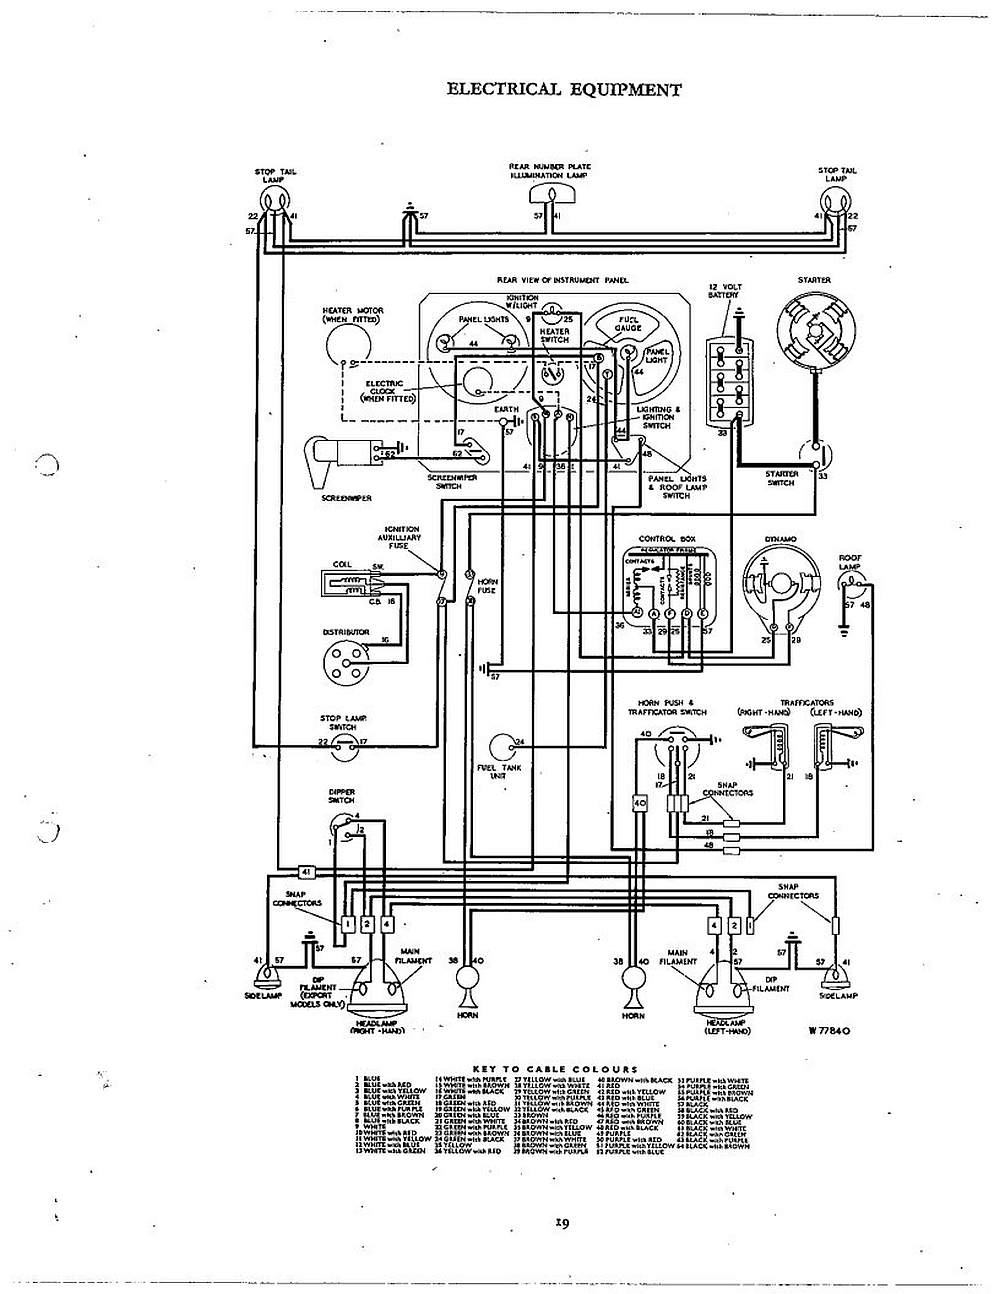 Triumph Mayflower wiring diagram 1973 triumph tr6 wiring diagram images readingrat net Bobcat Skid Steer Electrical Diagrams at bayanpartner.co